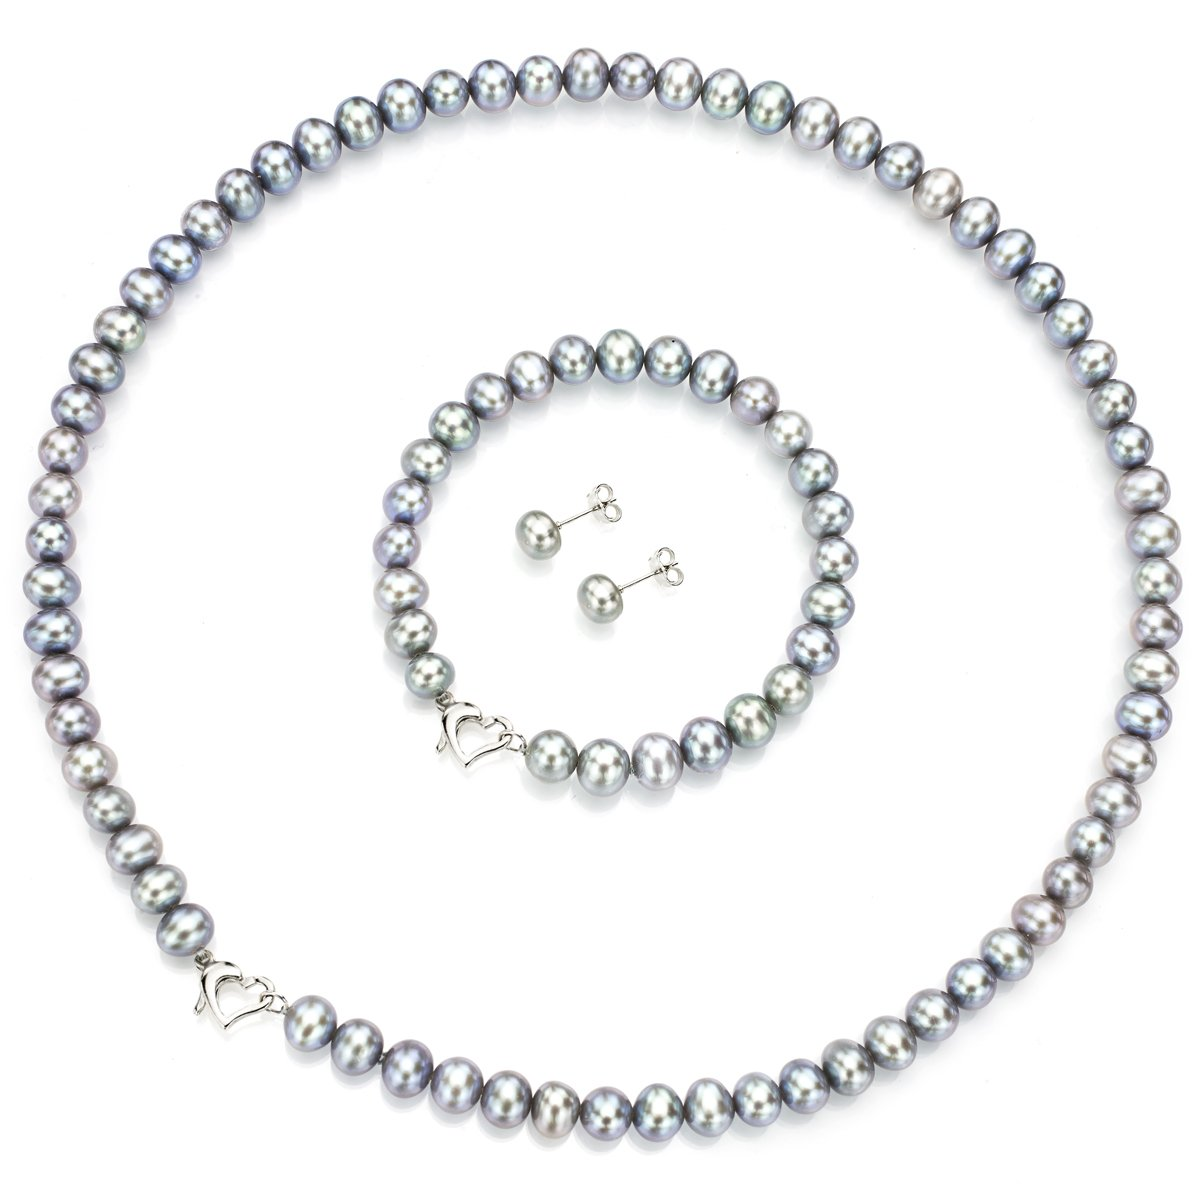 Heart Shape Sterling Silver 6-6.5mm Dyed-grey Freshwater Cultured Pearl Jewelry Set